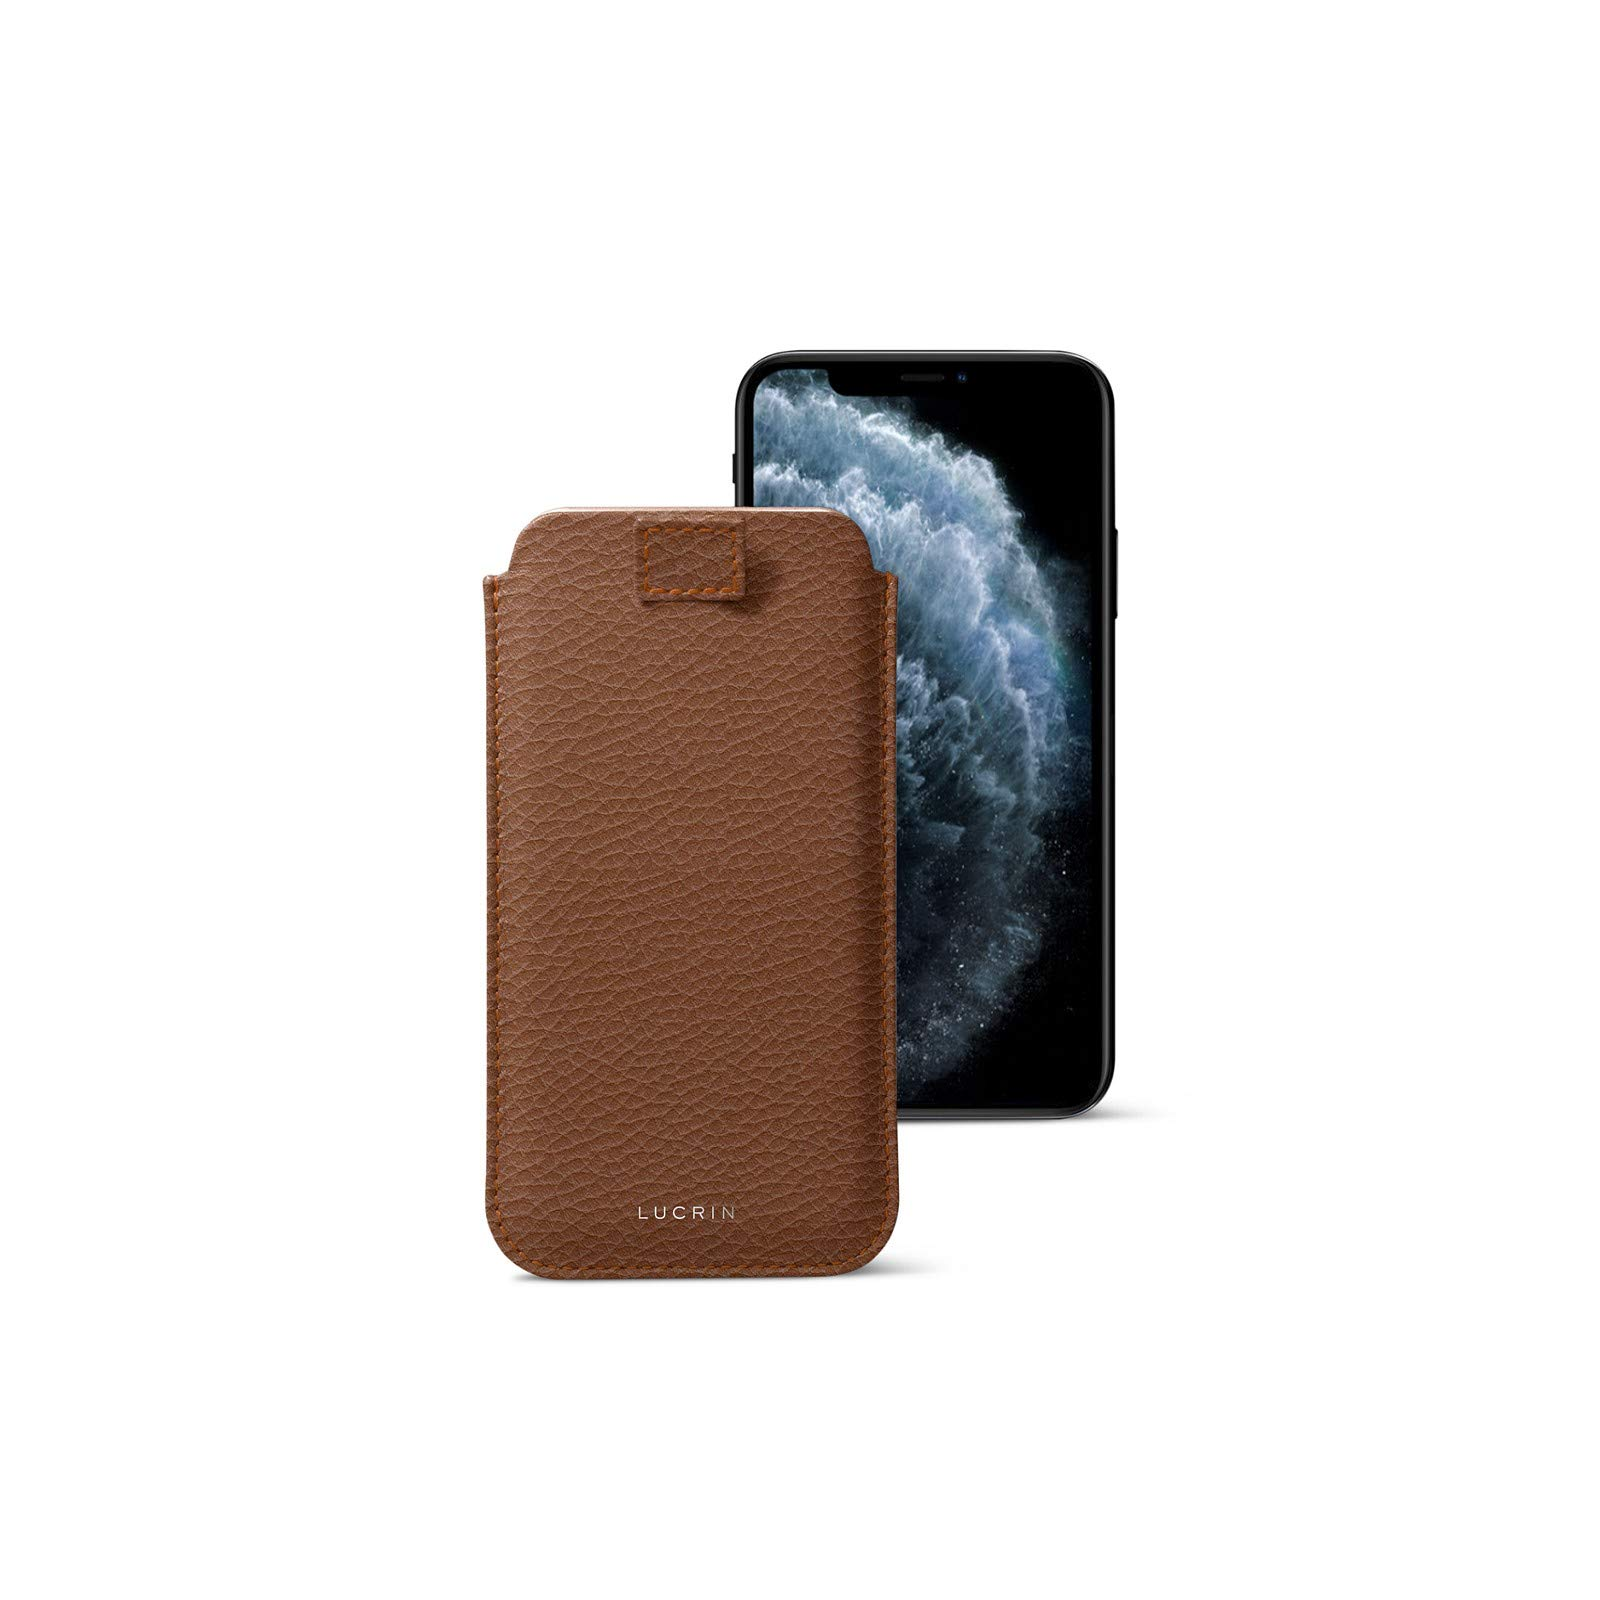 Lucrin - Pull-Up Strap Case Sleeve Cover Compatible with iPhone 11 Pro Max/XS Max/ 8 Plus and Wireless Charging - Tan - Granulated Leather